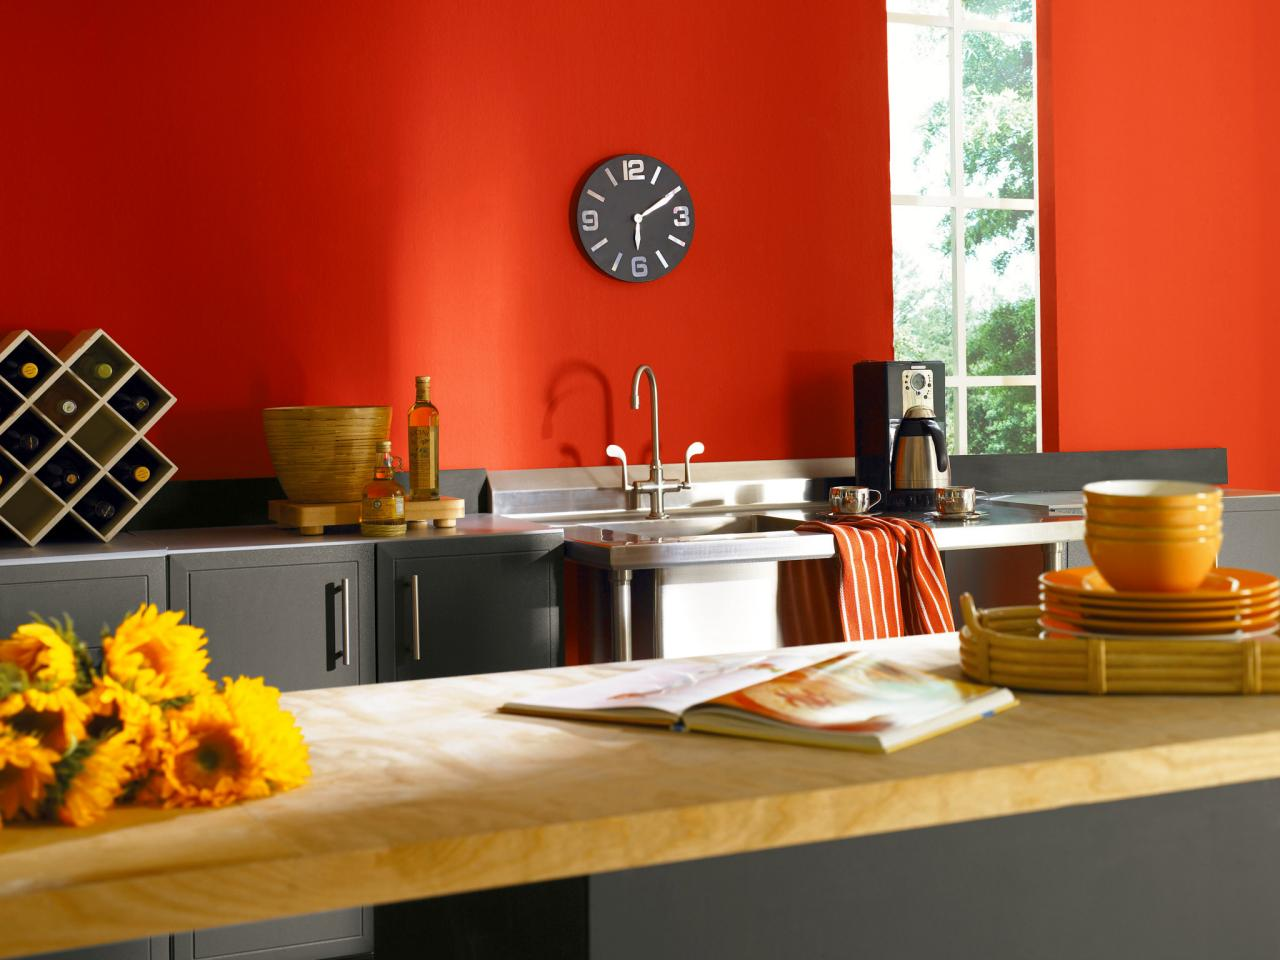 Use Orange Painted Wall for Unusual Kitchen Color Ideas in Contemporary Area with Grey Counter and Wine Rack